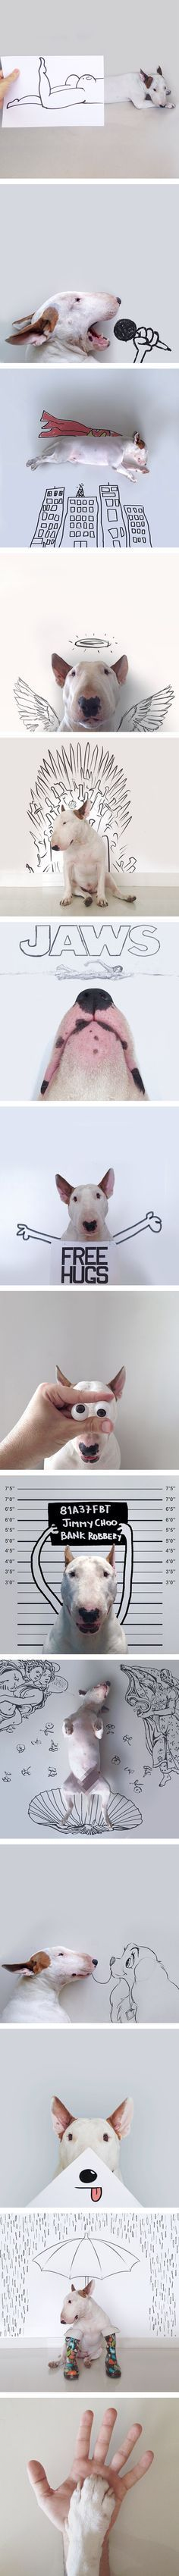 Dog Owner Creates Funny Illustrations Will His Bull Terrier And They Are Awesome